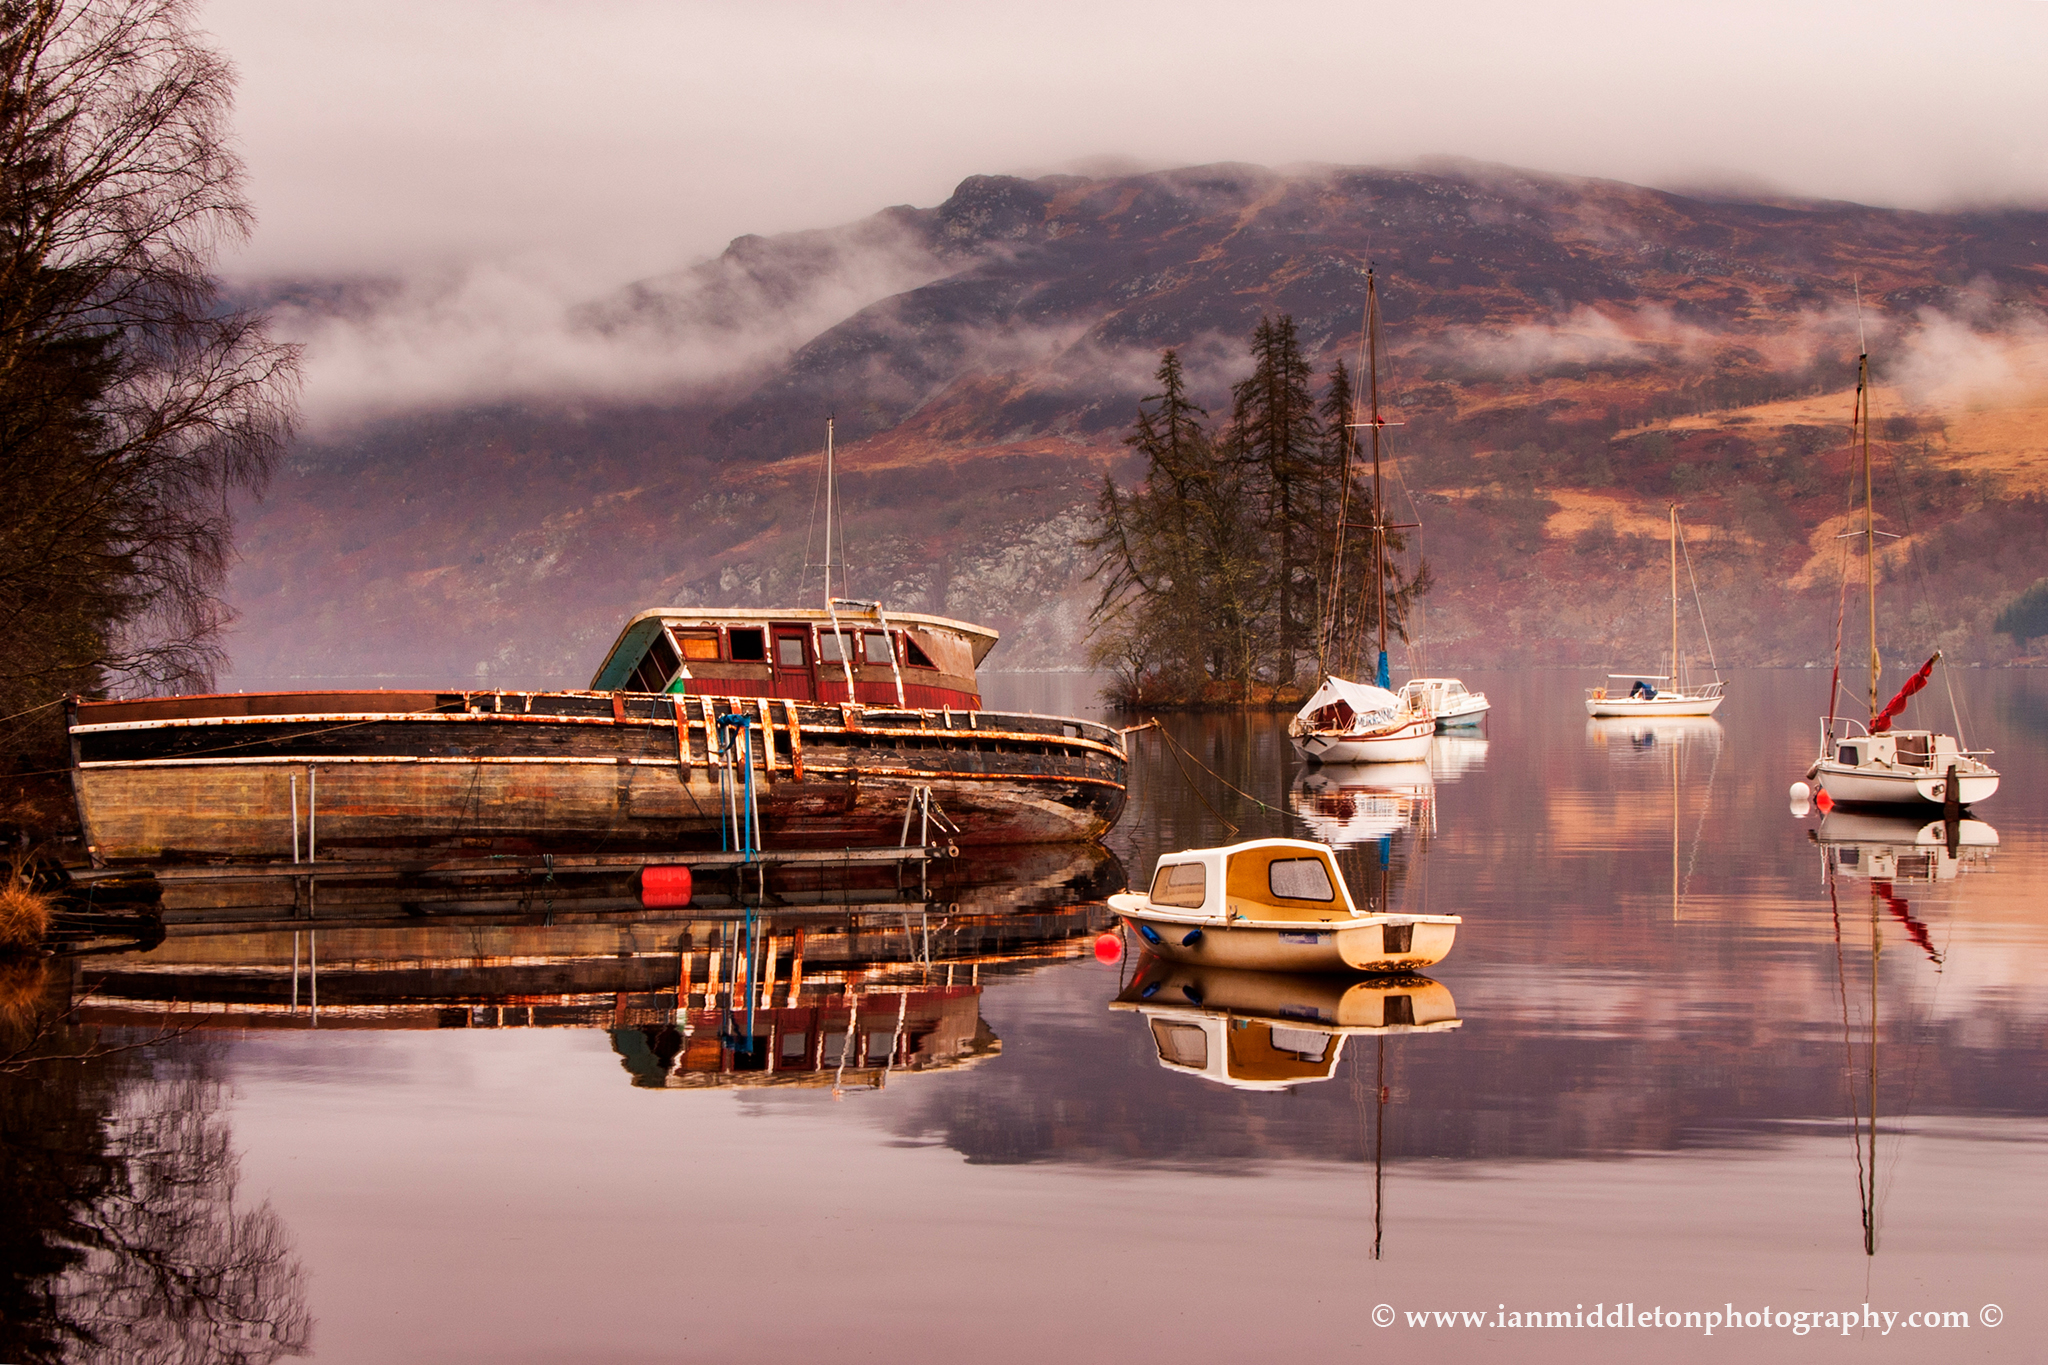 Misty morning reflections of Loch Ness in Scotland. Boats reflected as the morning mist dissipates near Fort Augustus.